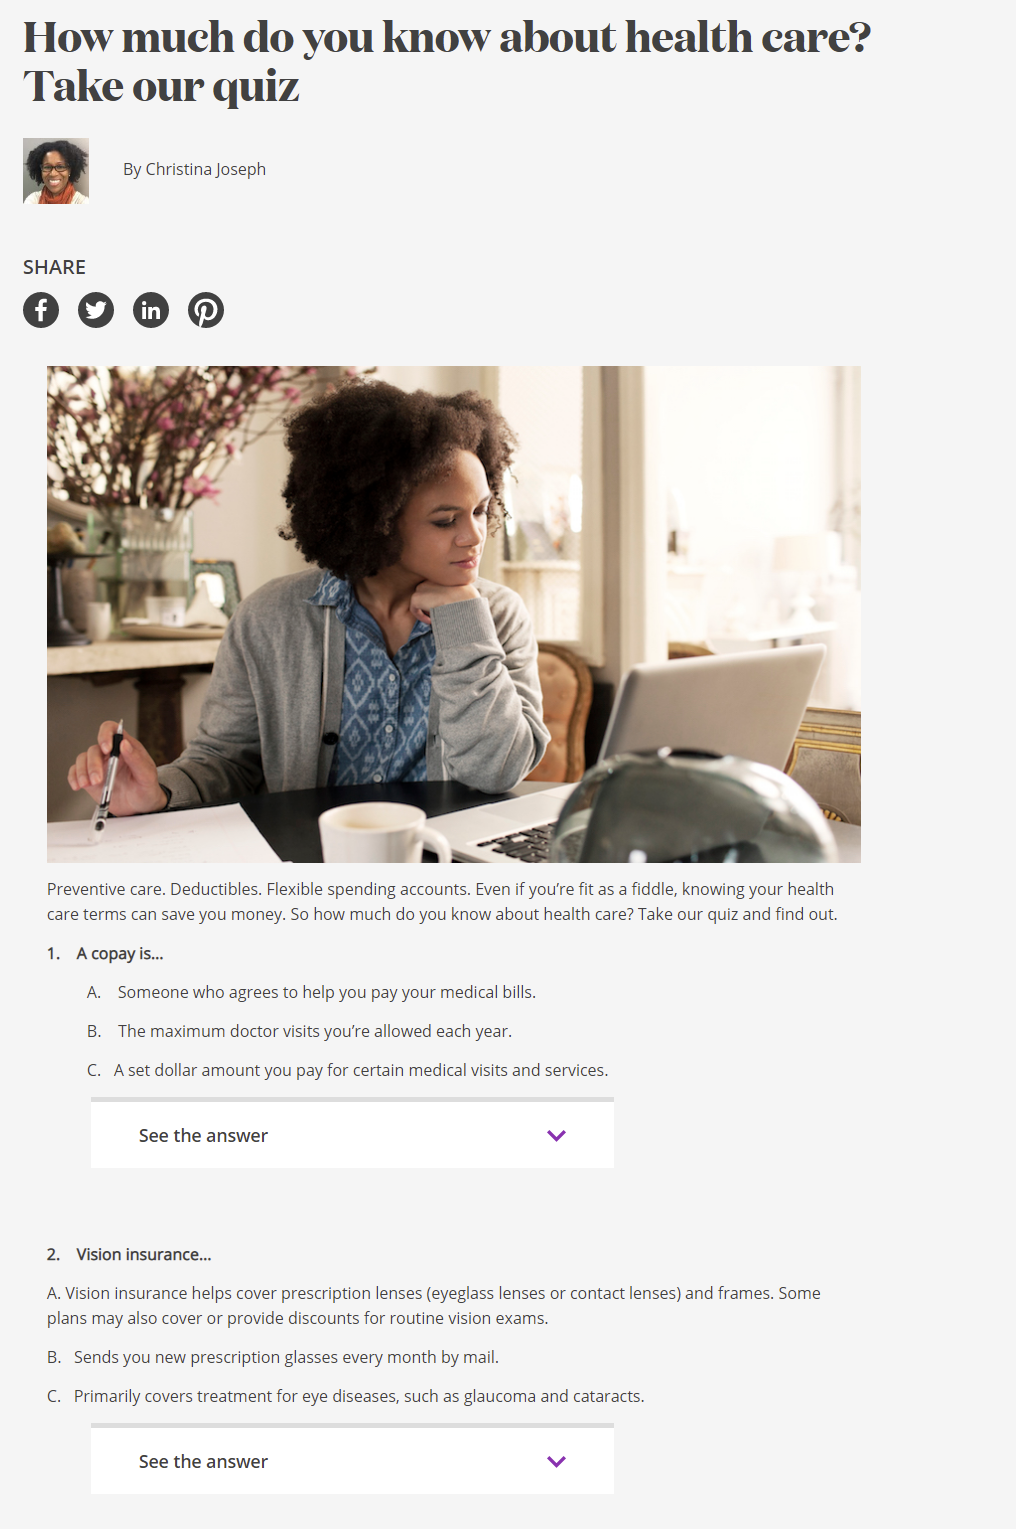 Aetna healthcare and insurance quiz